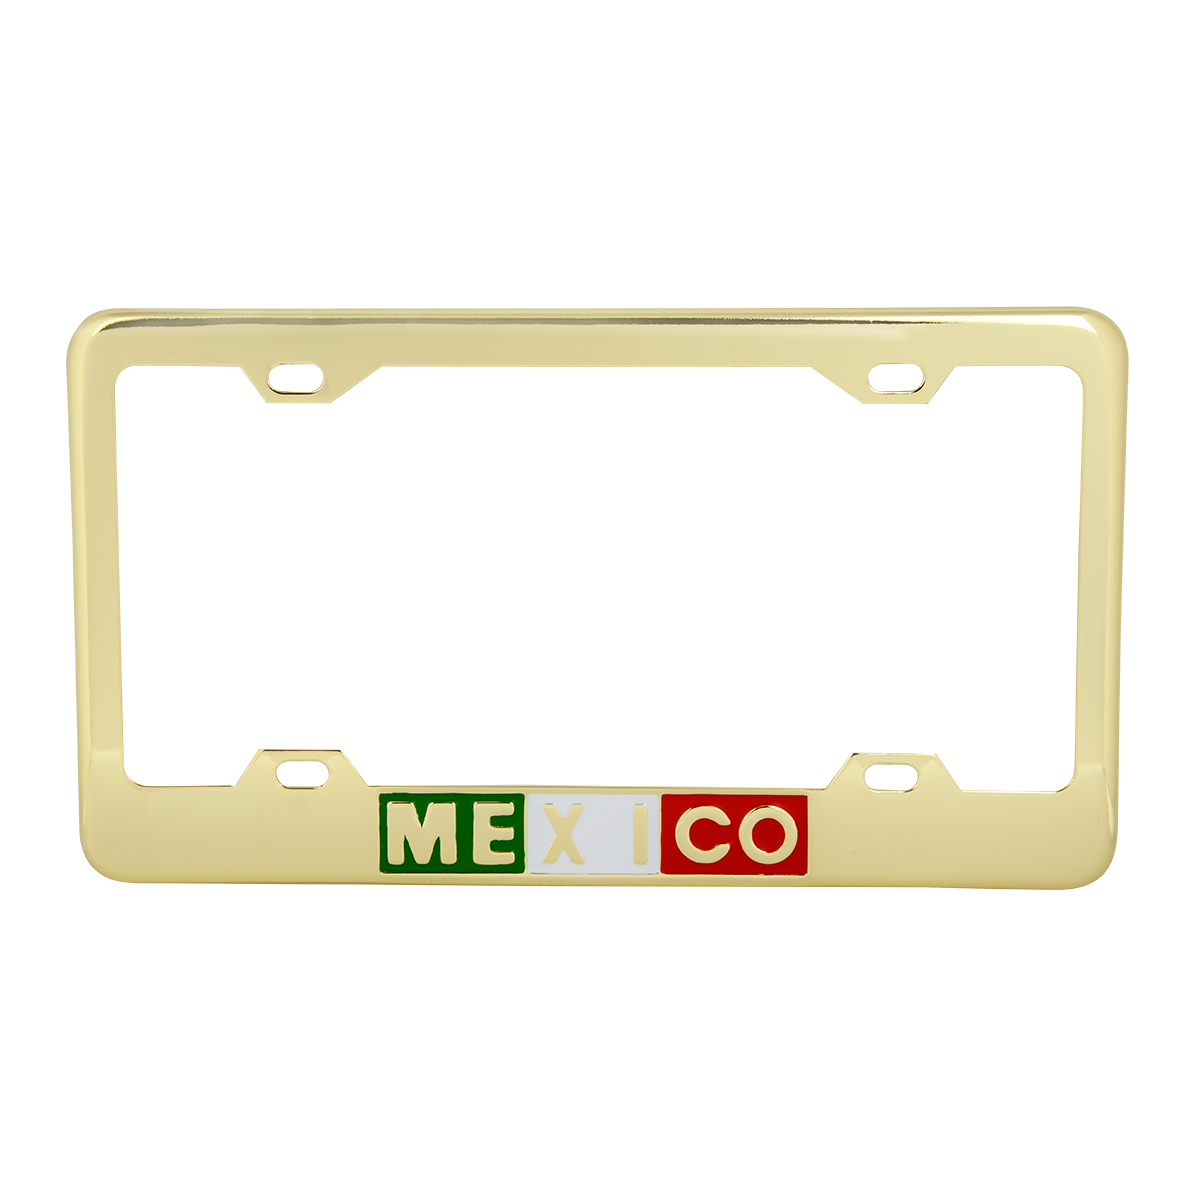 60211 Brass-Plated (Gold Color ) Mexico License Plate Frame - 4 Holes